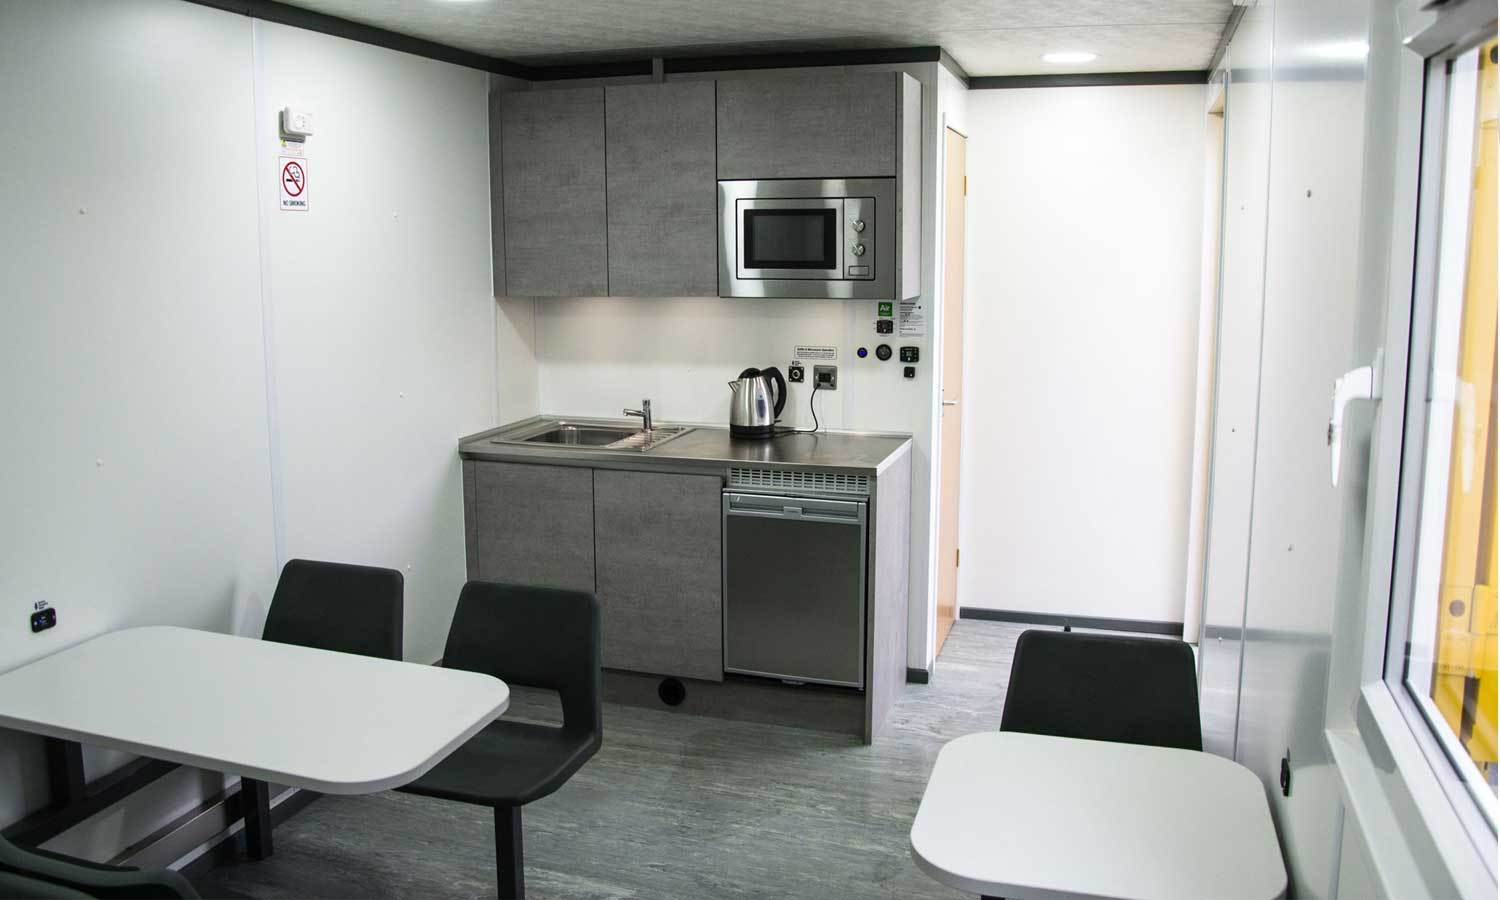 All In One Module 28 Site Welfare Unit To Hire - Internal Canteen Facilities